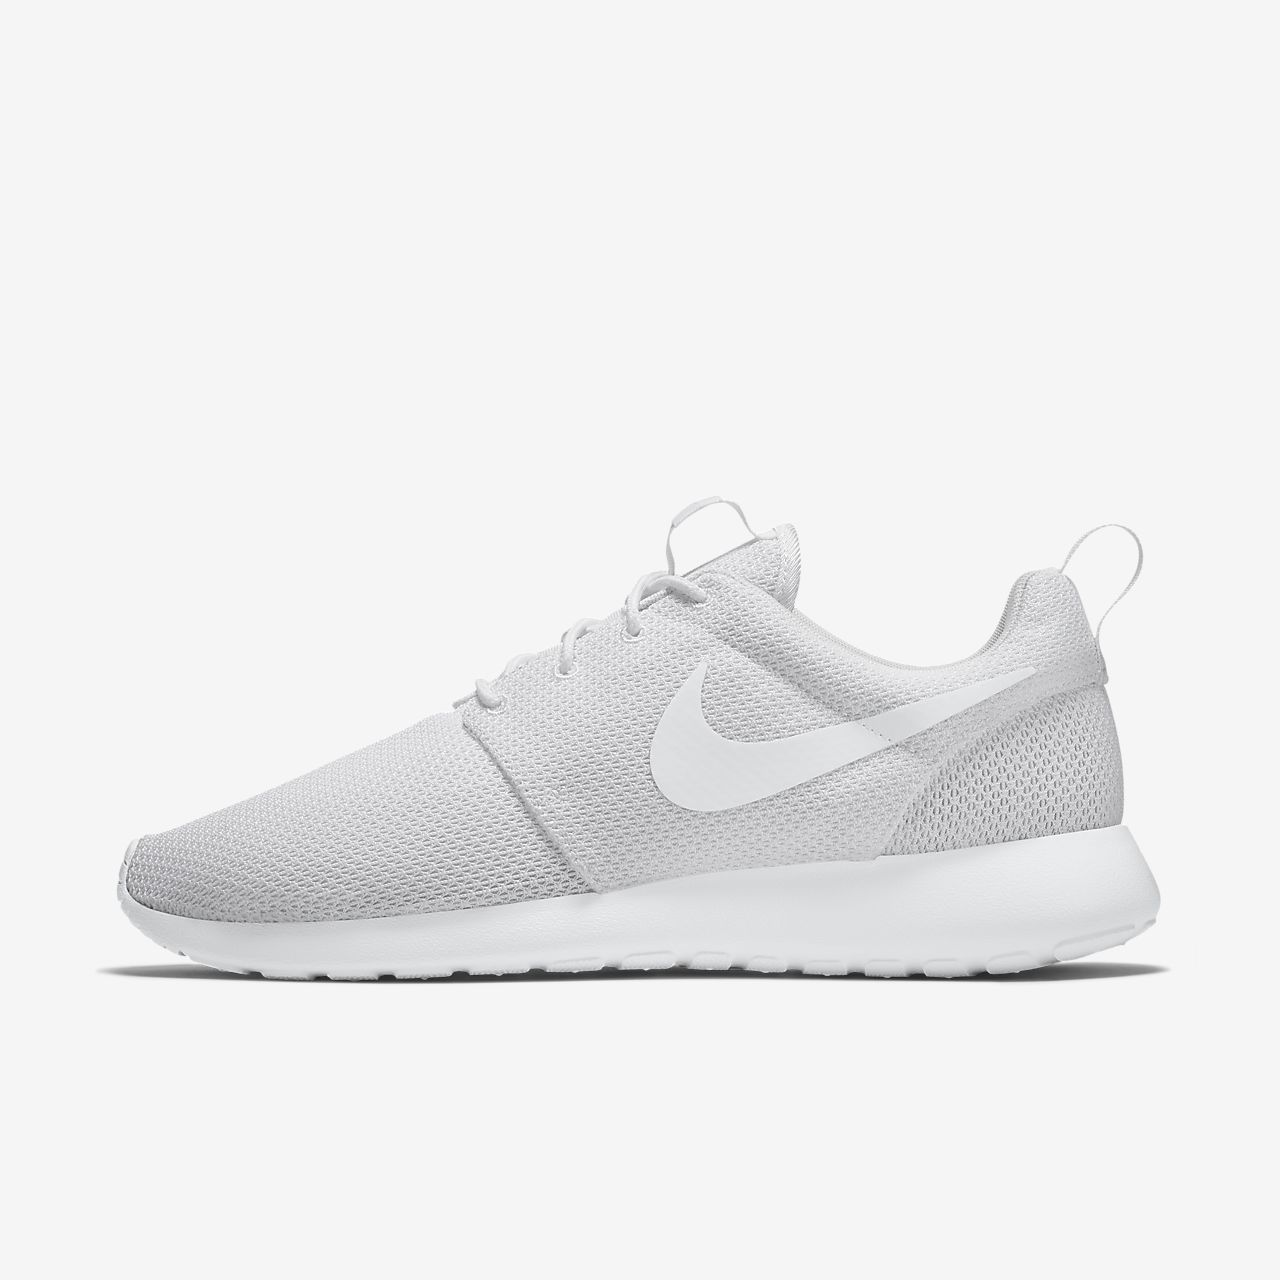 b283b4246d04 Nike Roshe One Men s Shoe. Nike.com